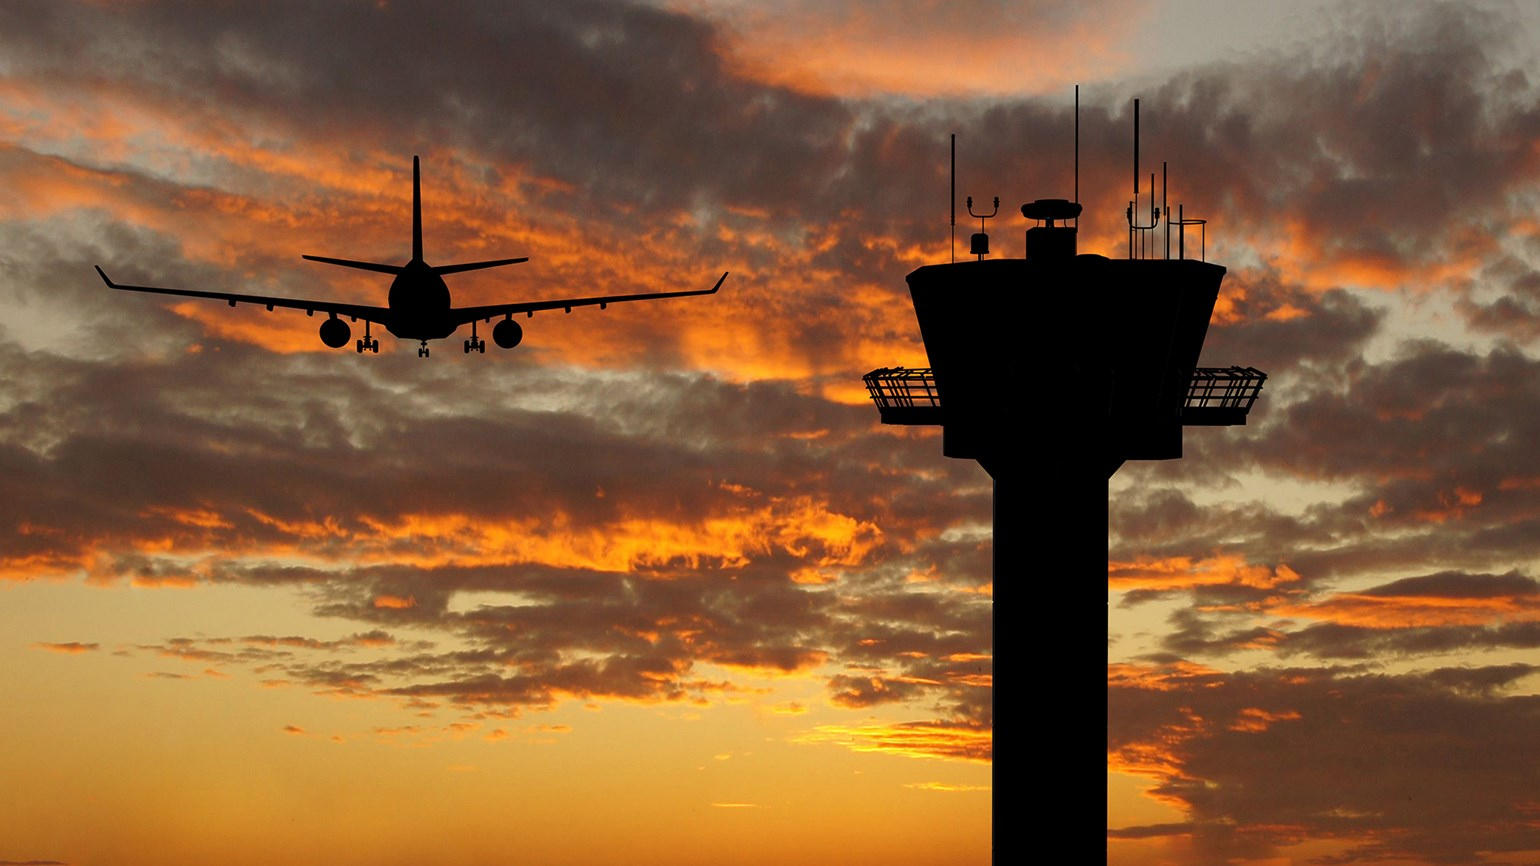 Air traffic control tower [Credit: Ersin Ergin/Shutterstock.com]